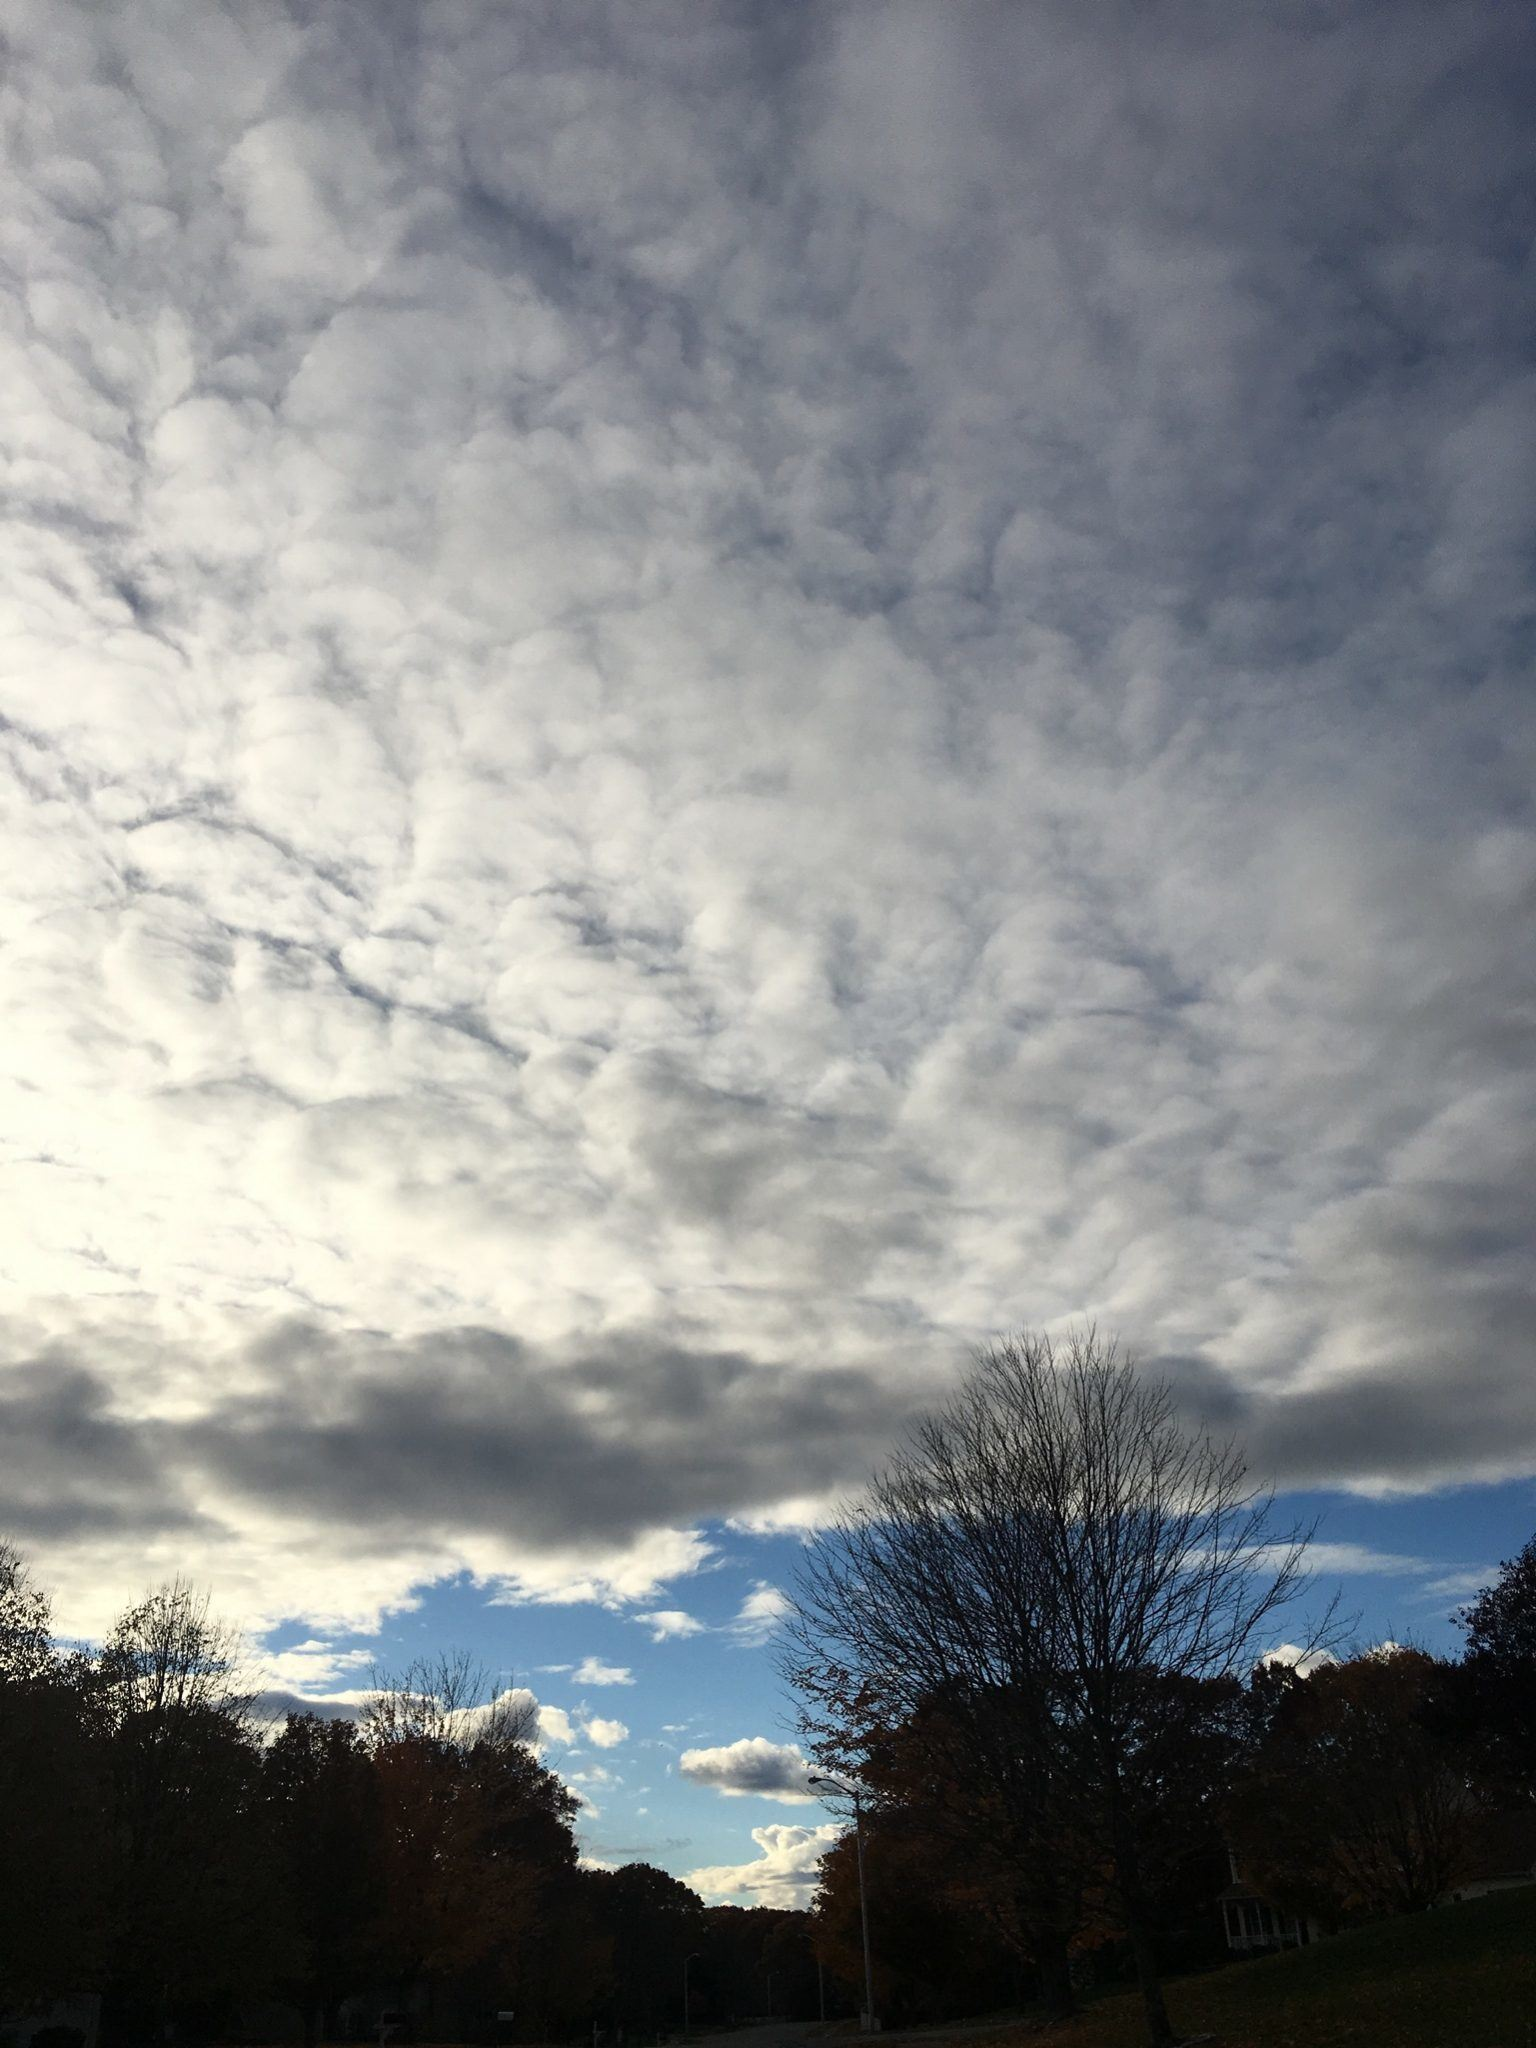 Clouds - with white/grey texturevatar